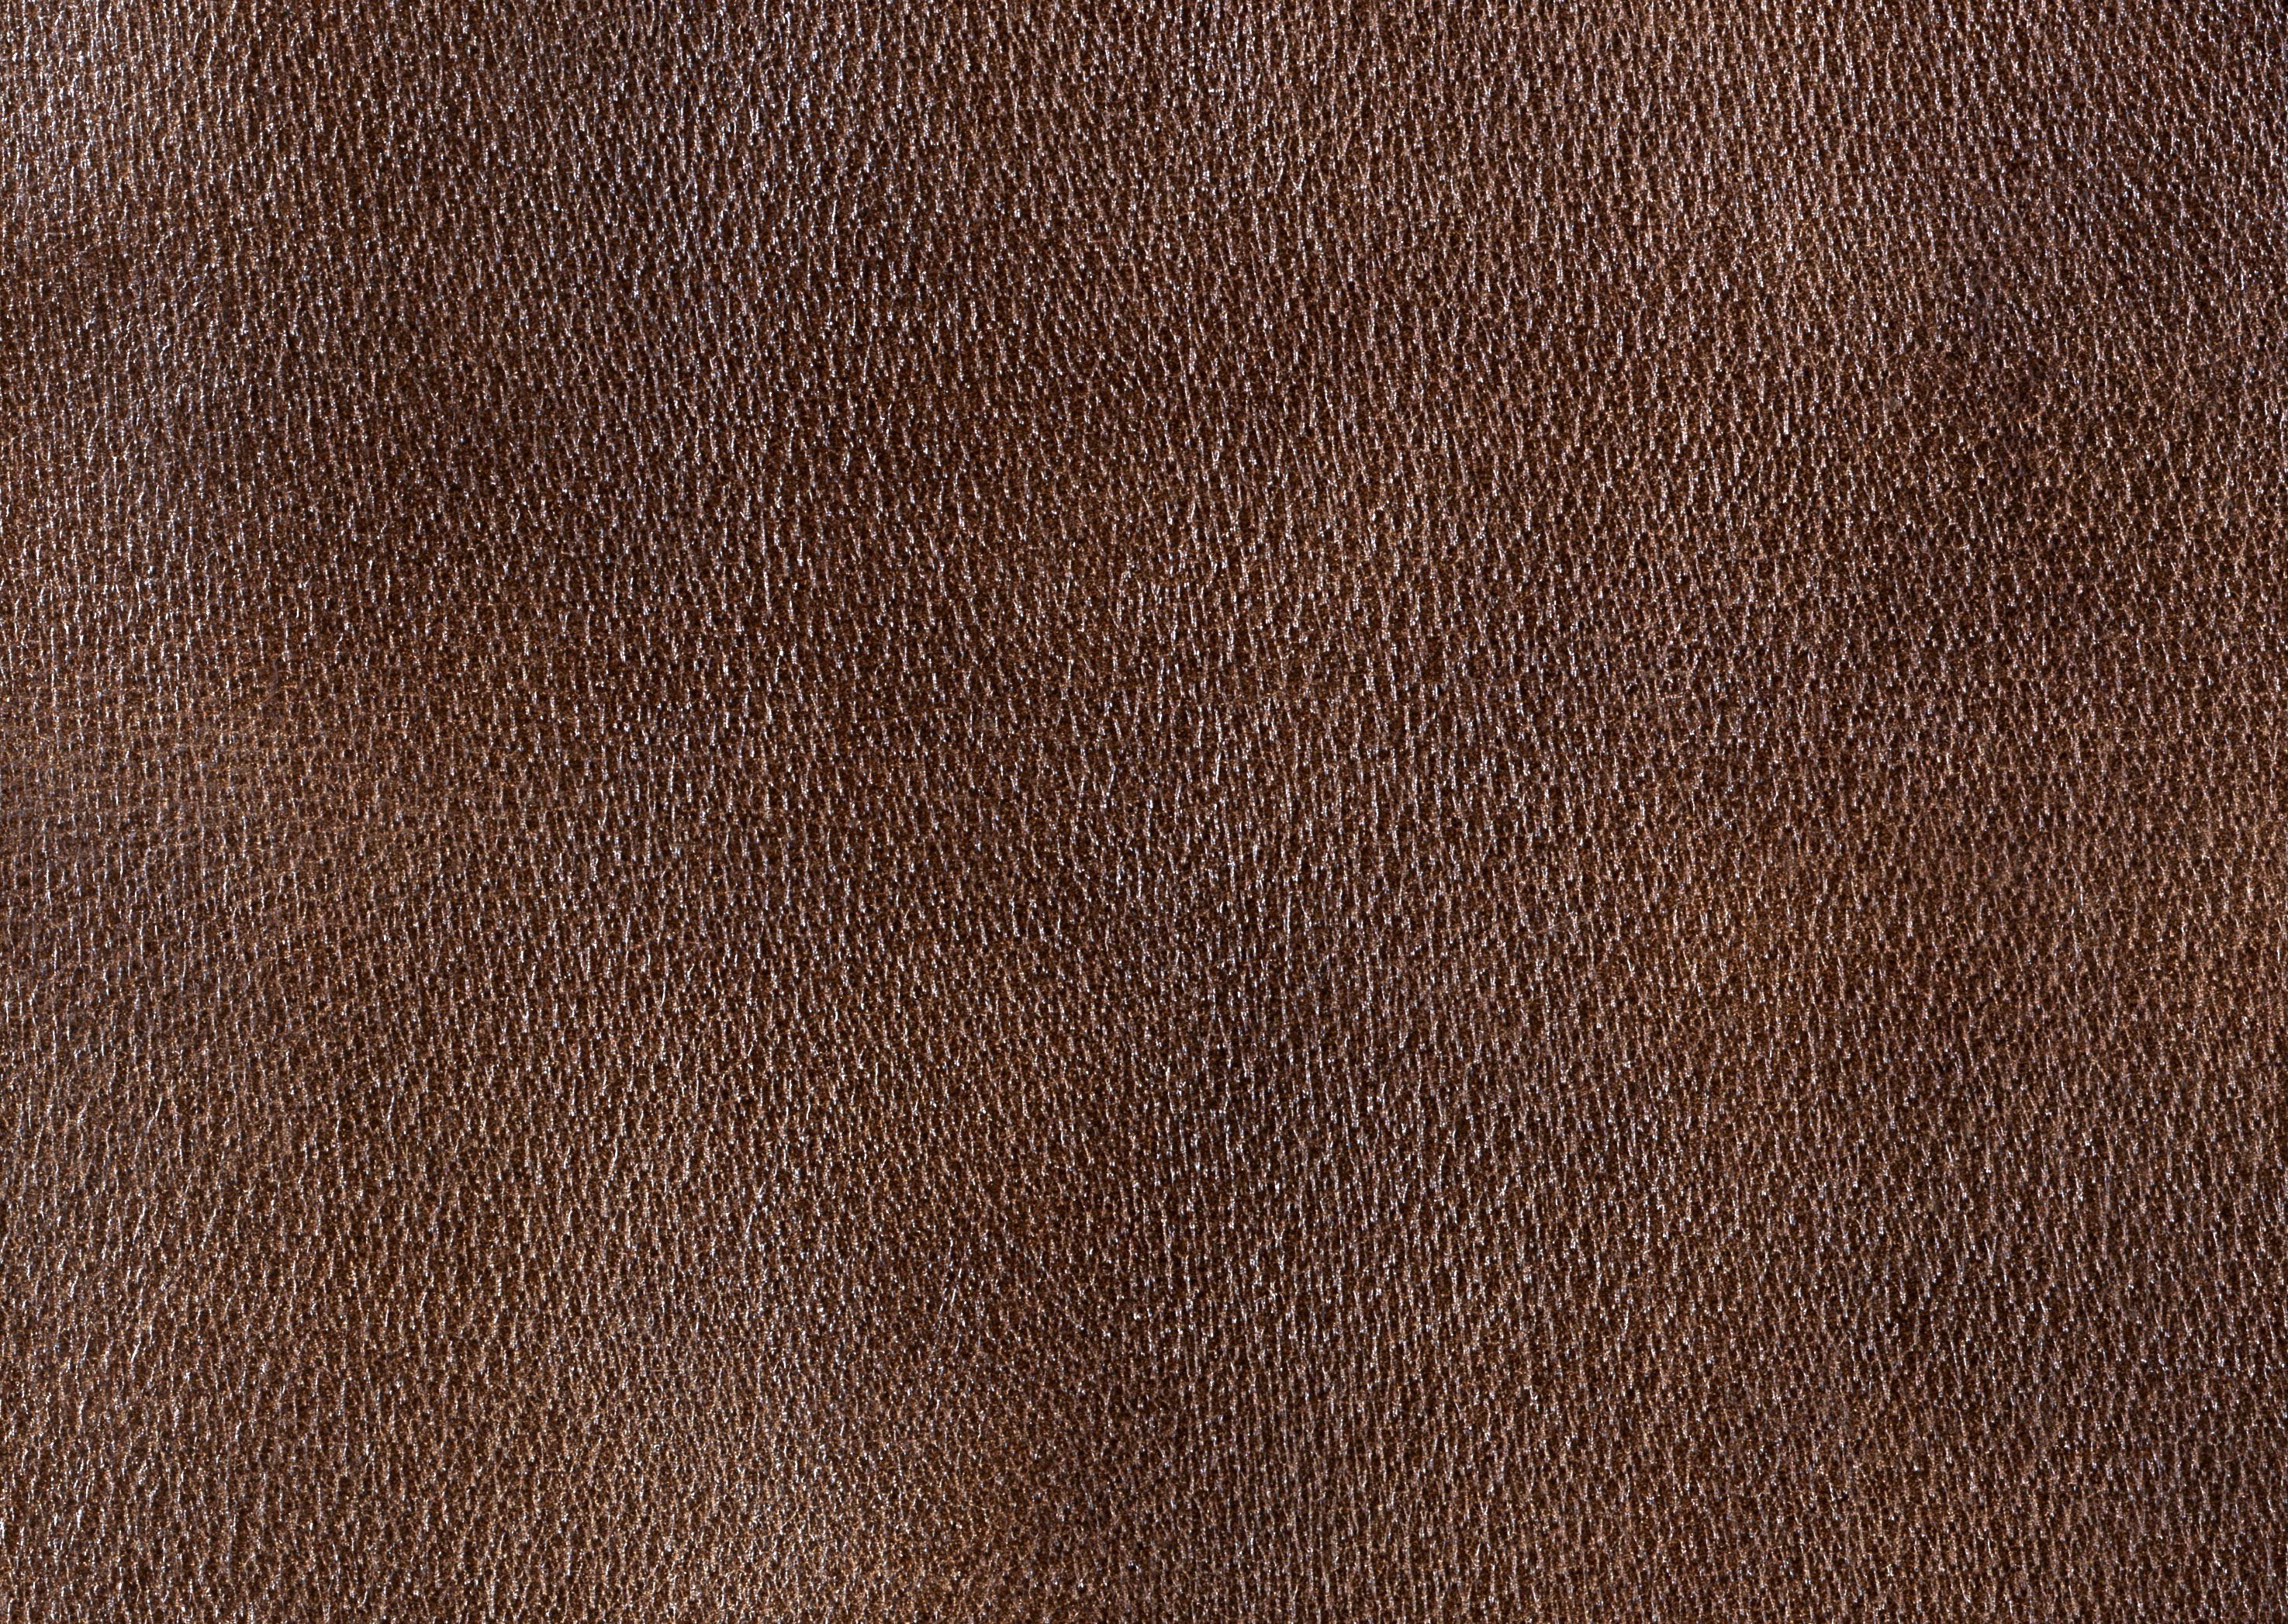 Brown leather big textures background image free picture for Texture background free download